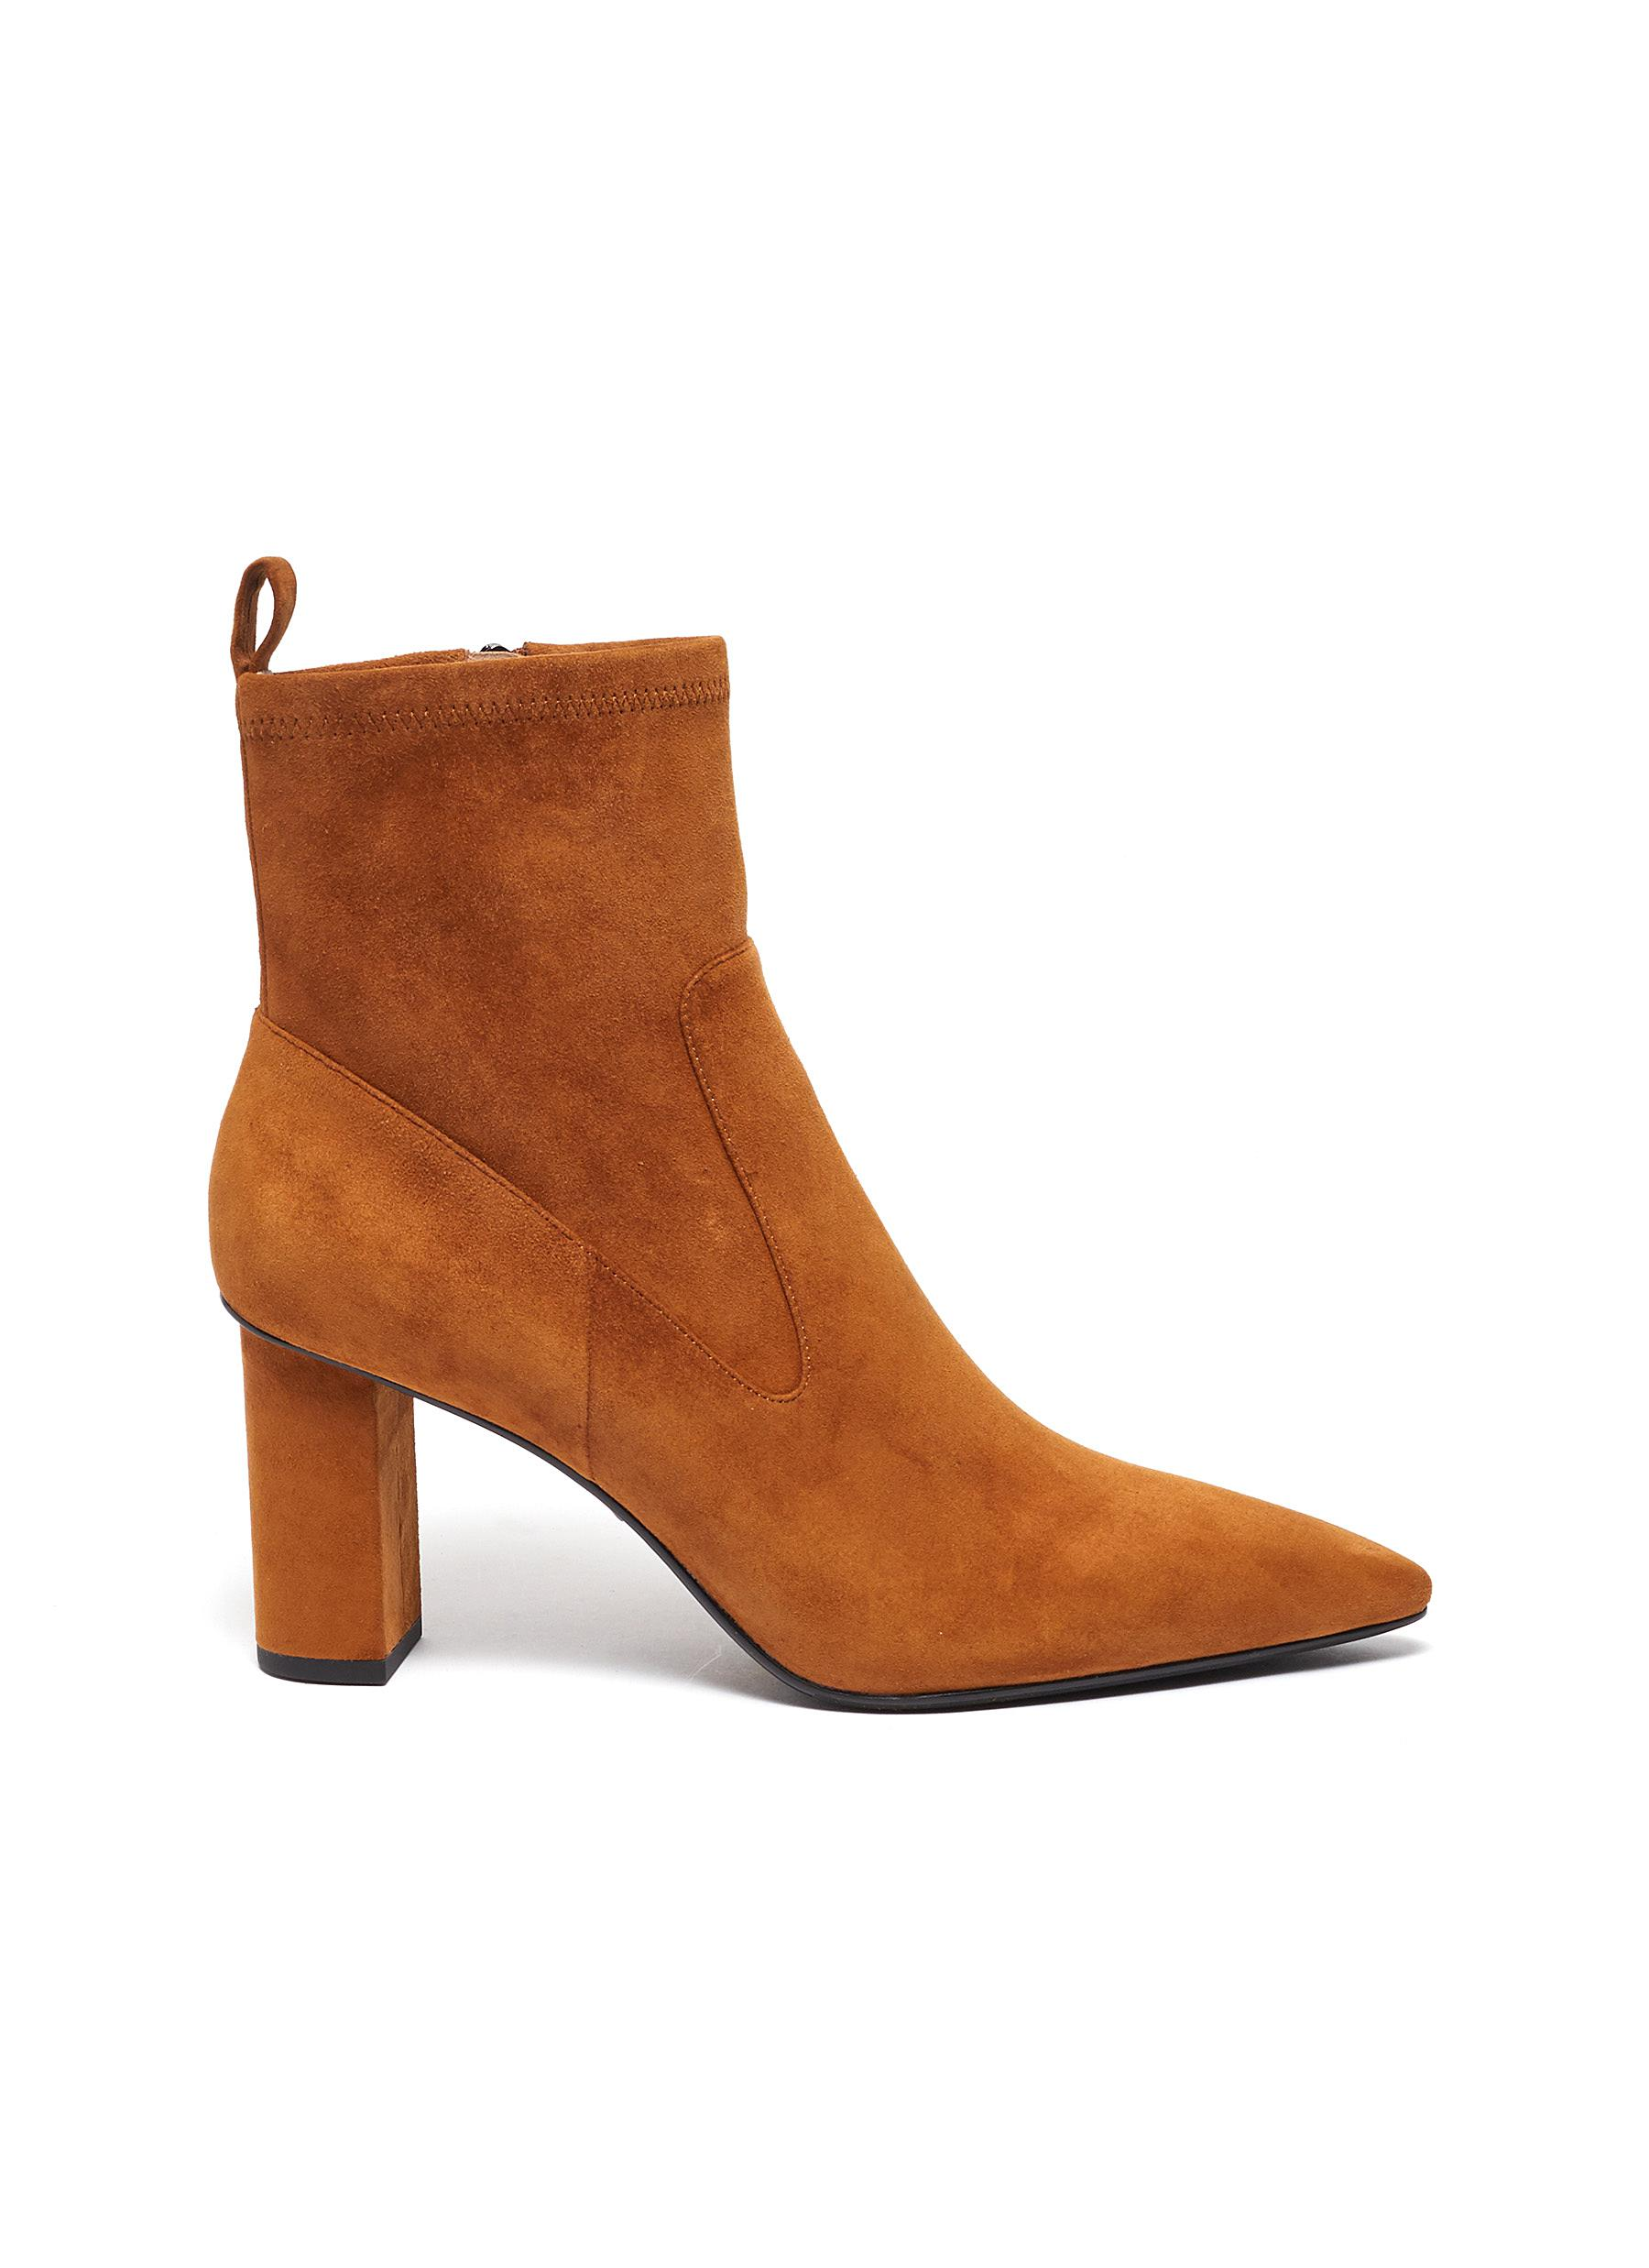 Belinda suede ankle boots by Pedder Red